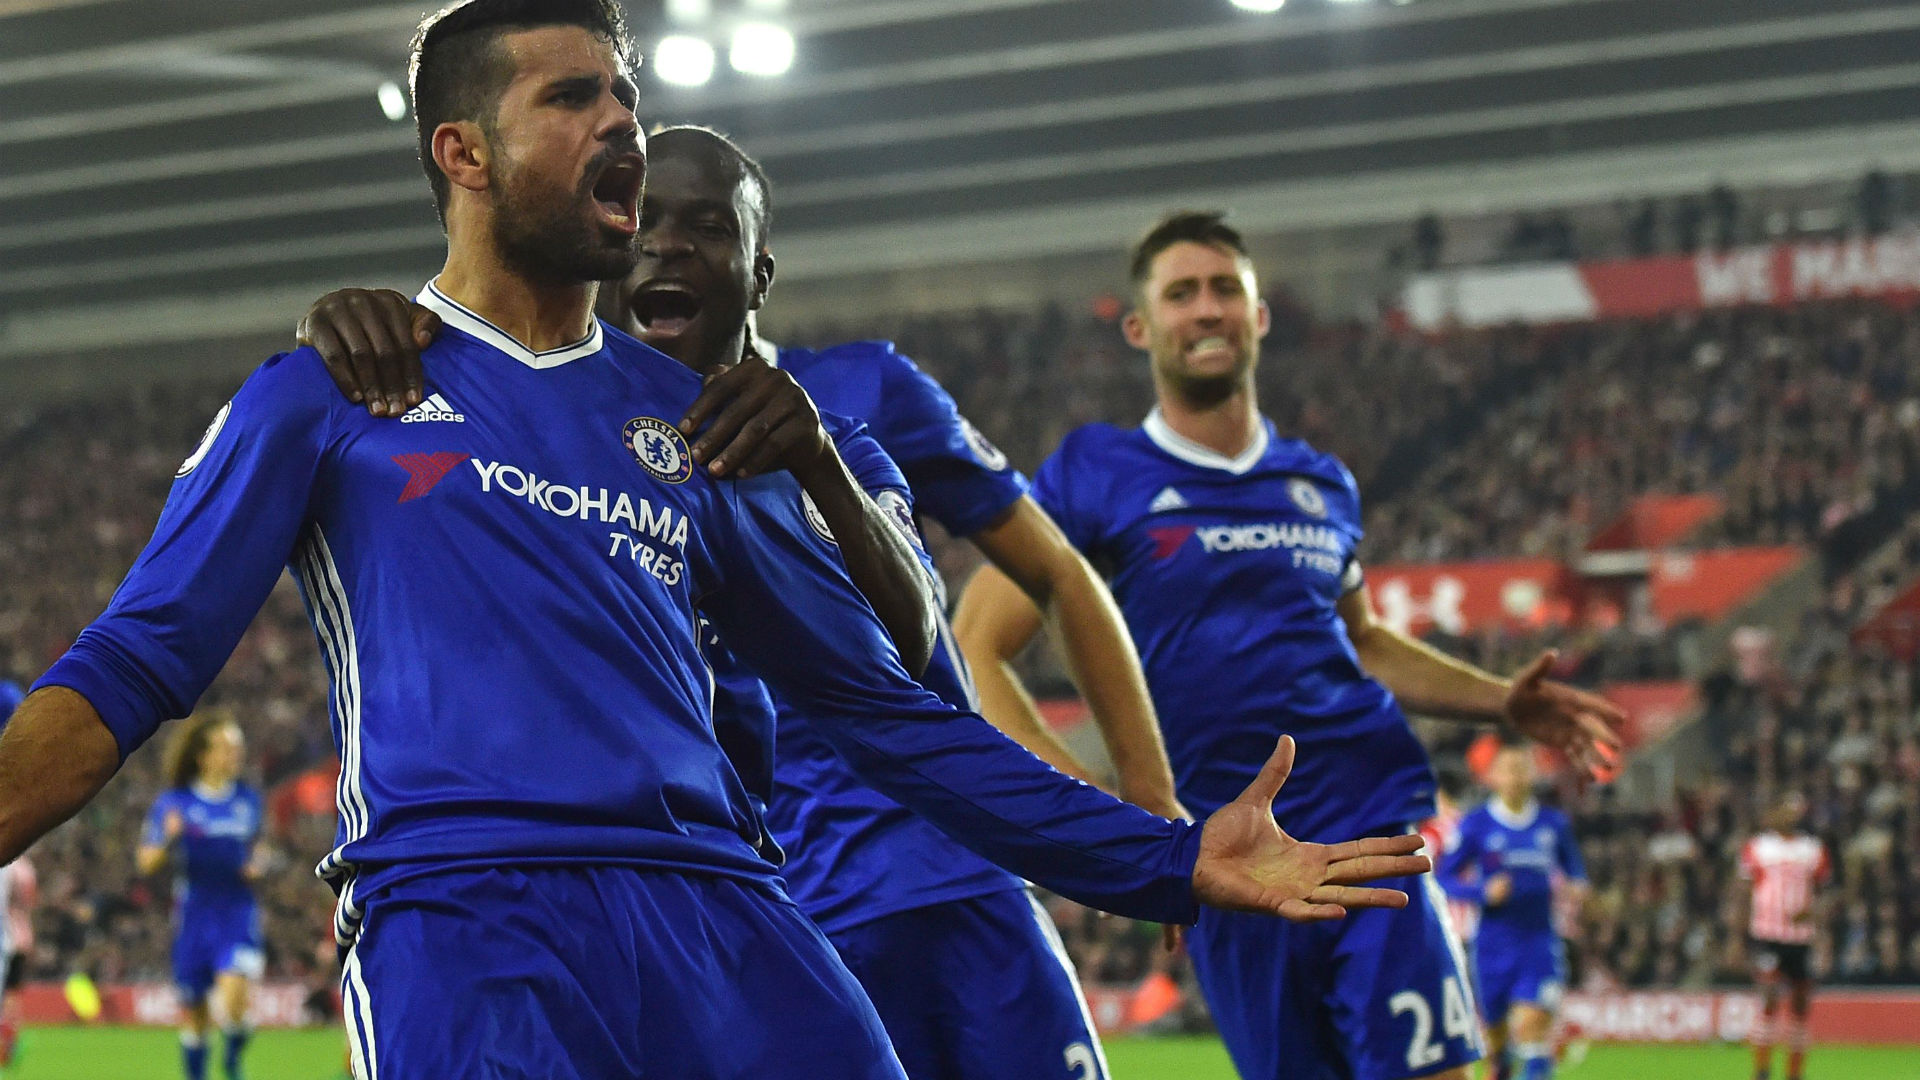 Southampton 0-2 Chelsea: Hazard & Costa fire Blues into top four